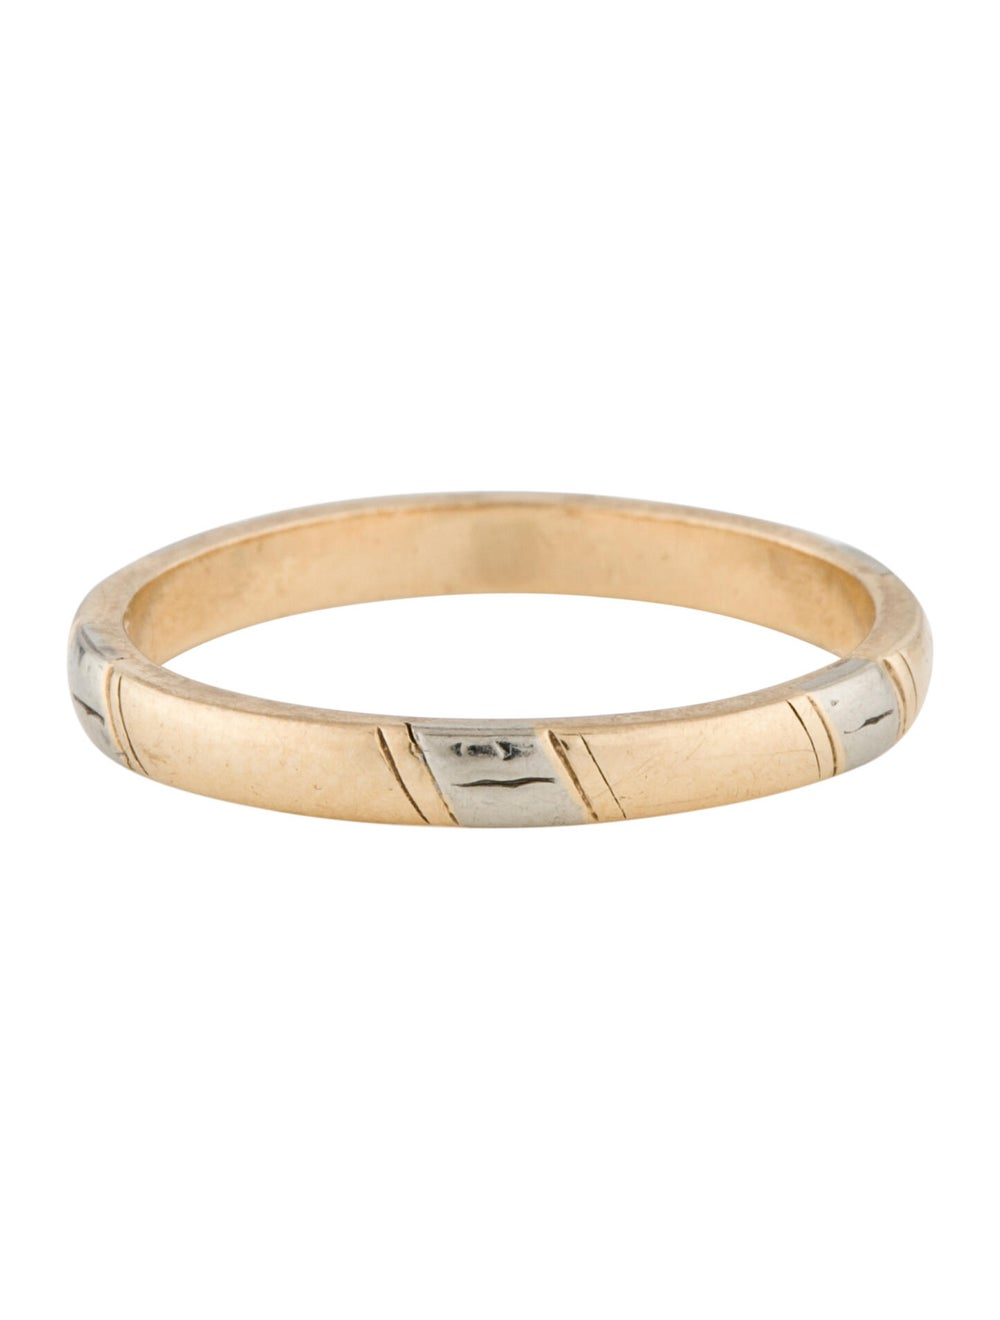 Ring Two-Tone 14K Band Yellow - image 4